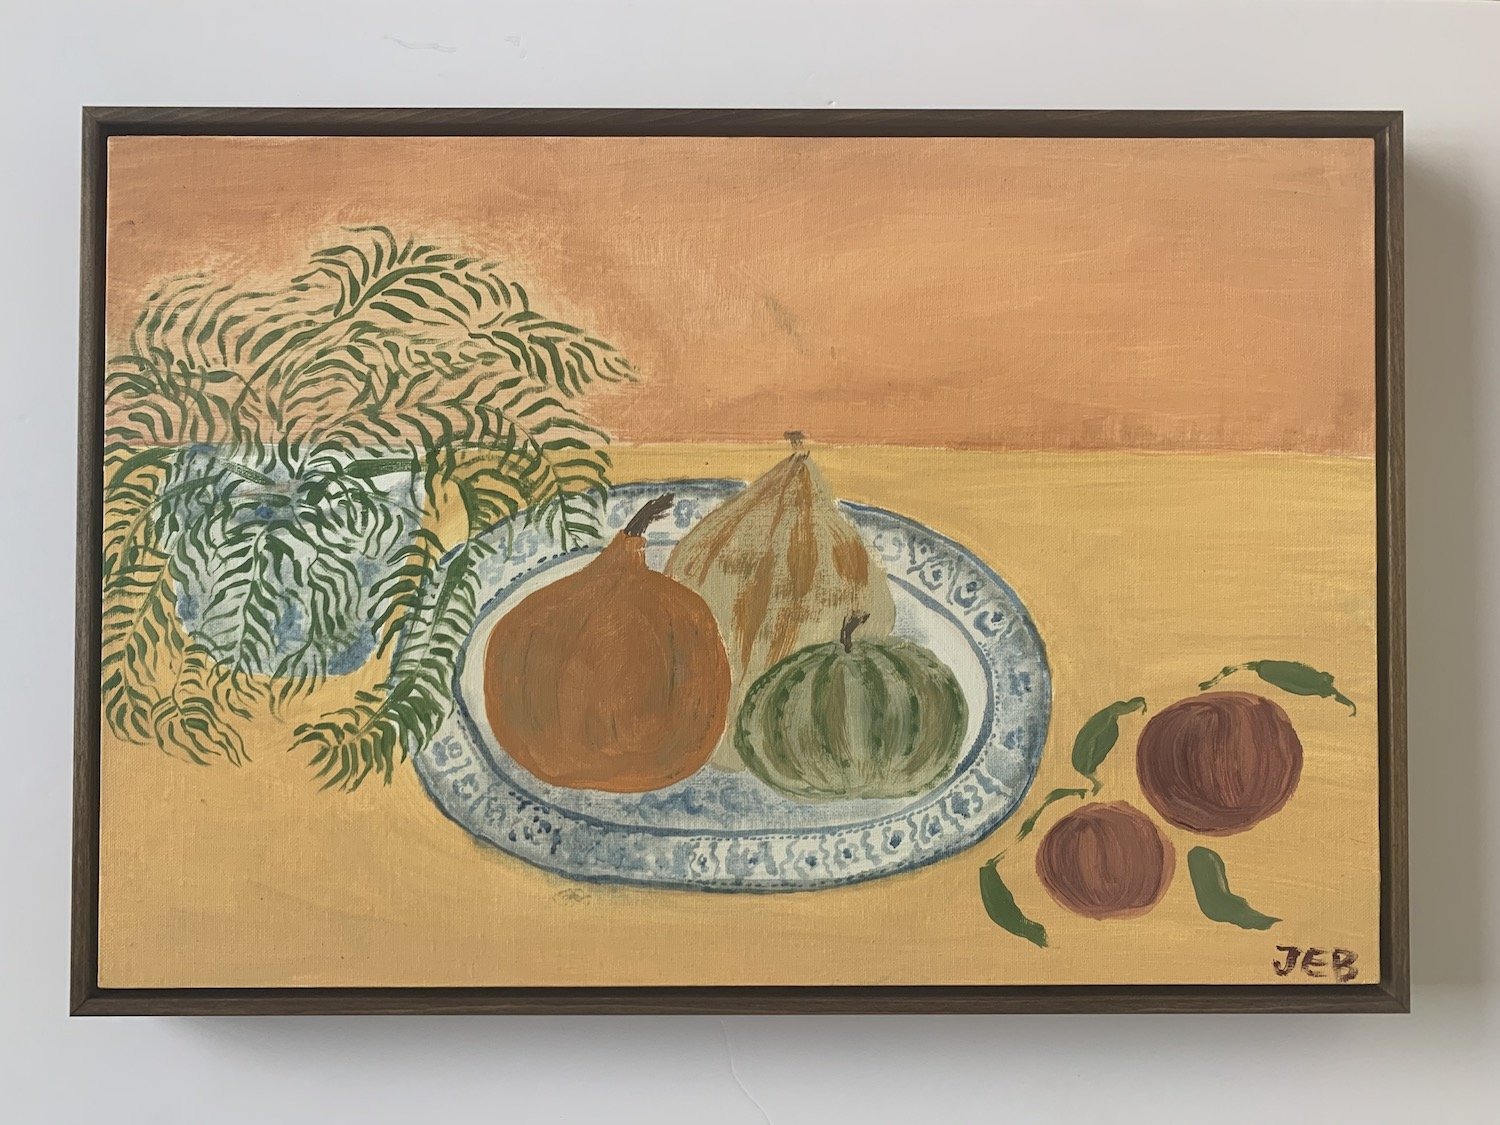 Squash on blue plate | Julianna Byrne | Original Artwork | Partnership Editions